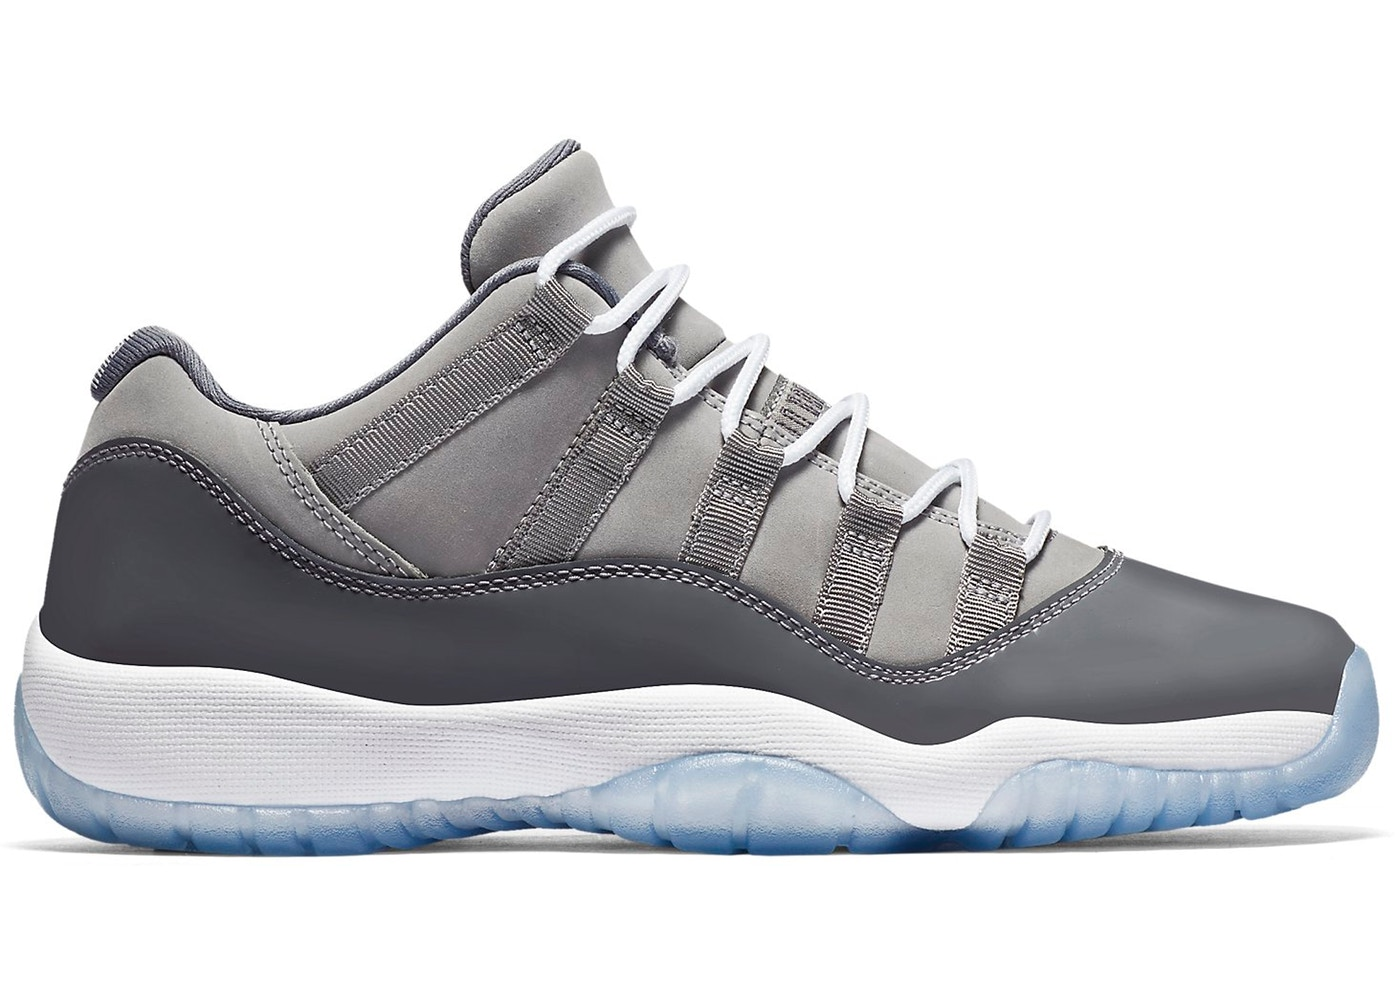 pretty nice 6d52b 2d74a Jordan 11 Retro Low Cool Grey (GS) - 528896-003